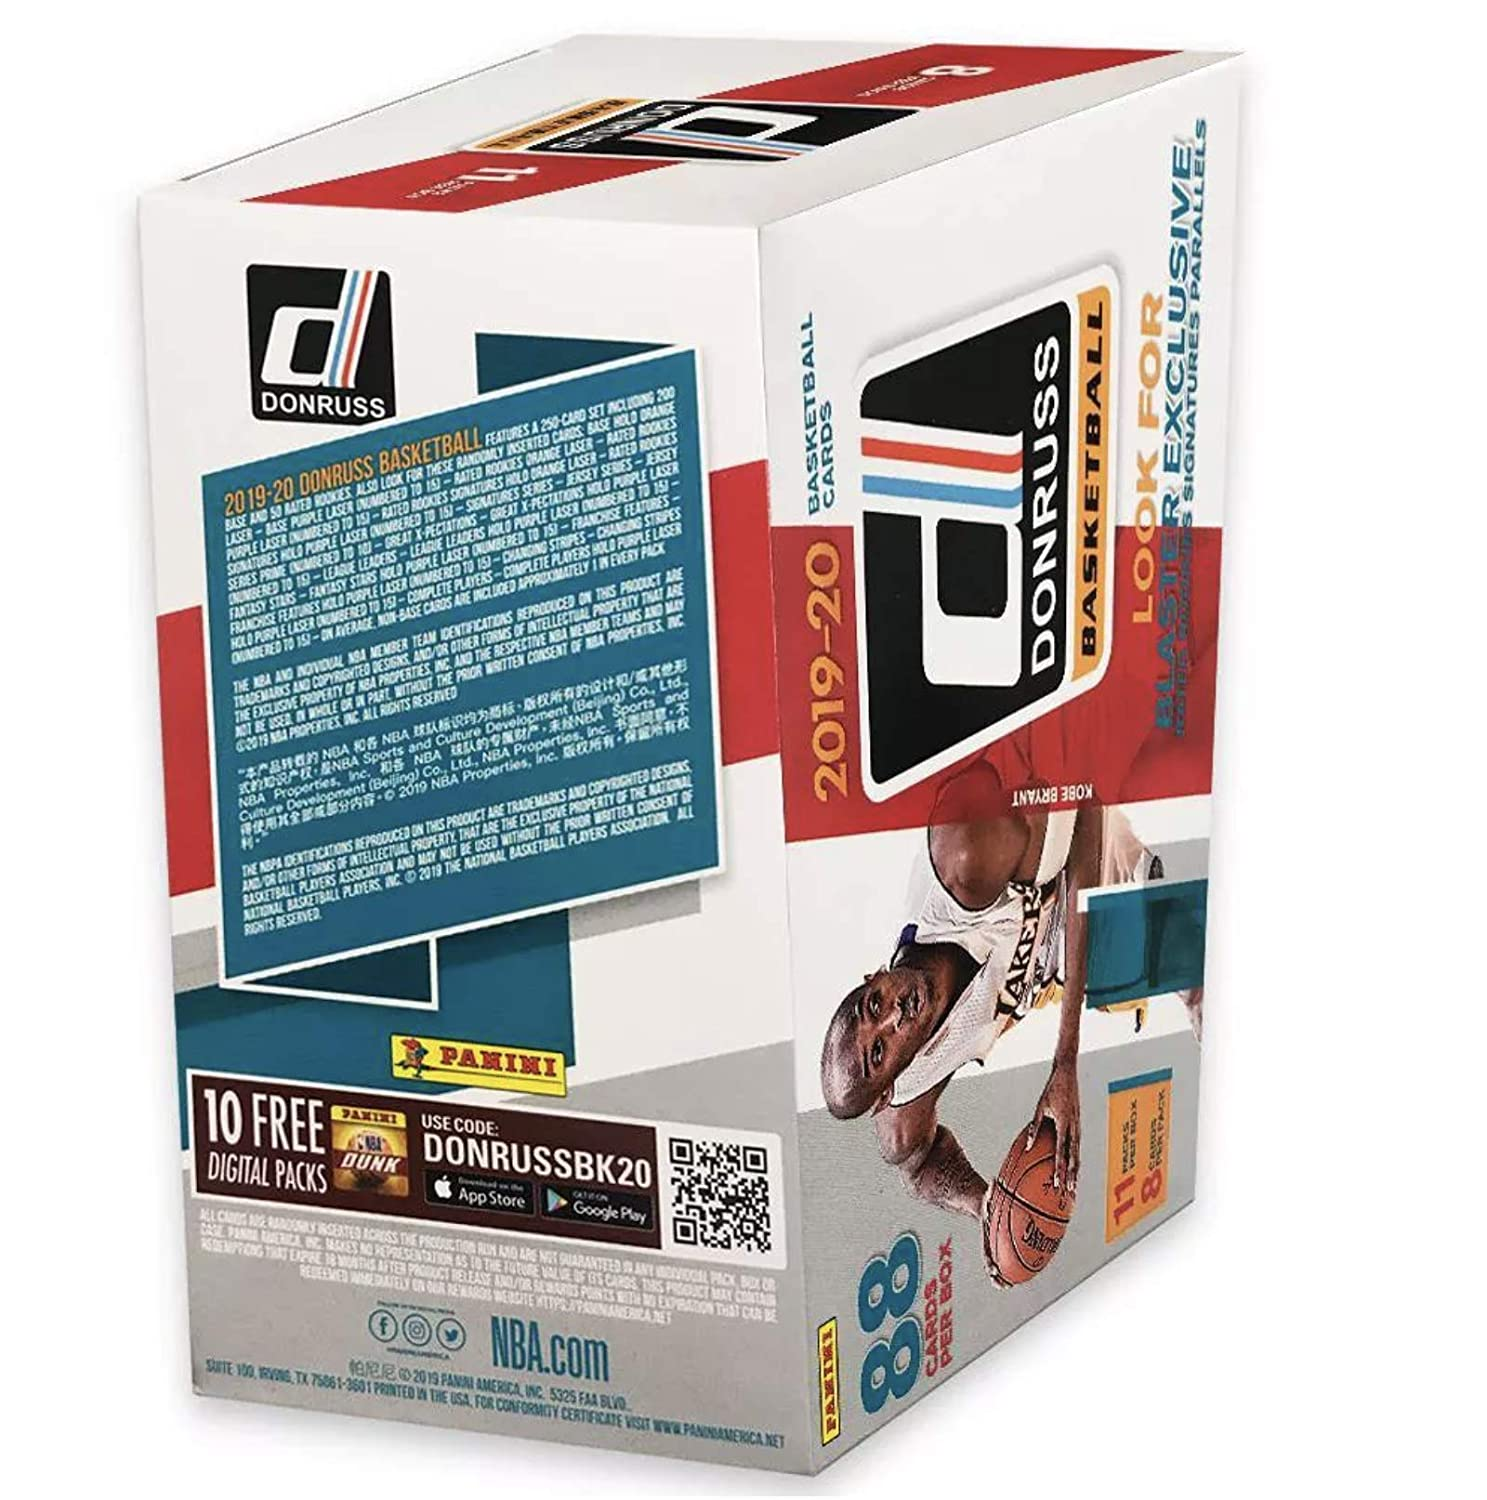 2019-20 Panini NBA Donruss Basketball Blaster Box 88 Total Cards 1 Autograph or Memorabilia Card per Box by Panini